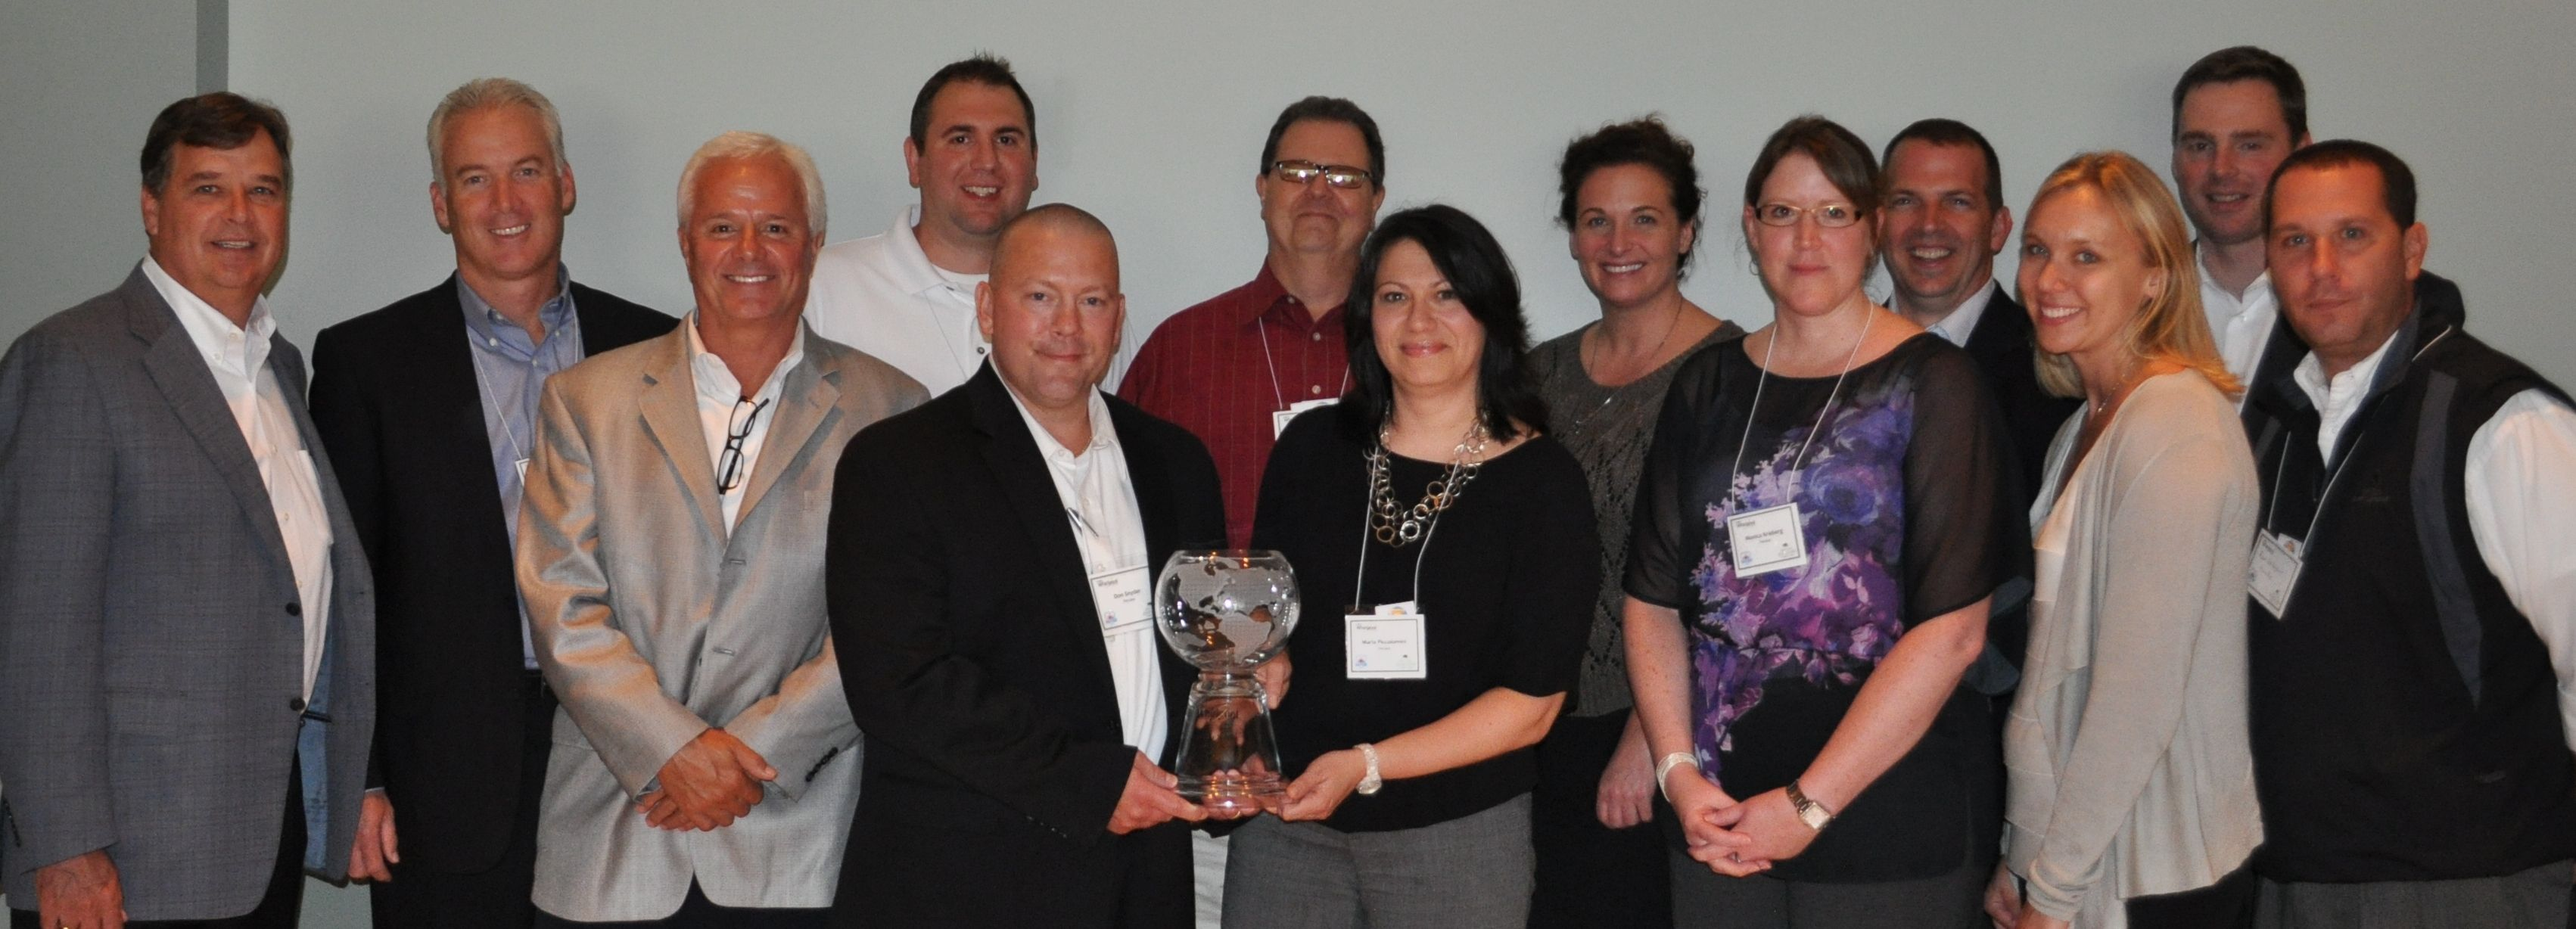 Penske Logistics Honored by Whirlpool with Pair of Awards